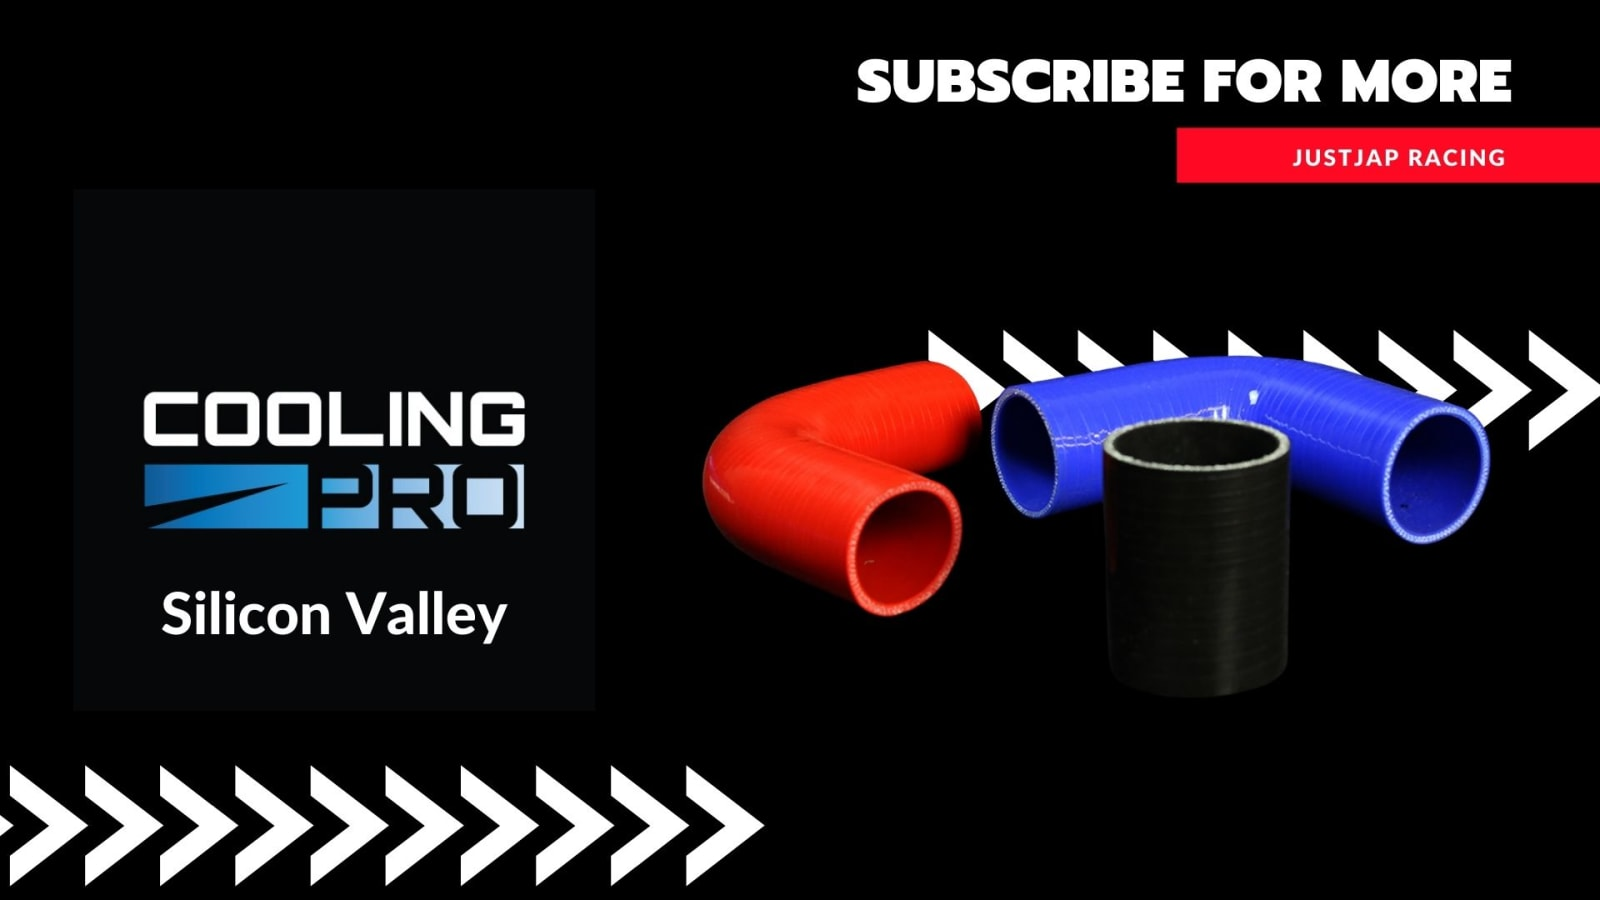 Cooling Pro Silicone 3.15 Inch / 80mm 135 Degree Bend Hose